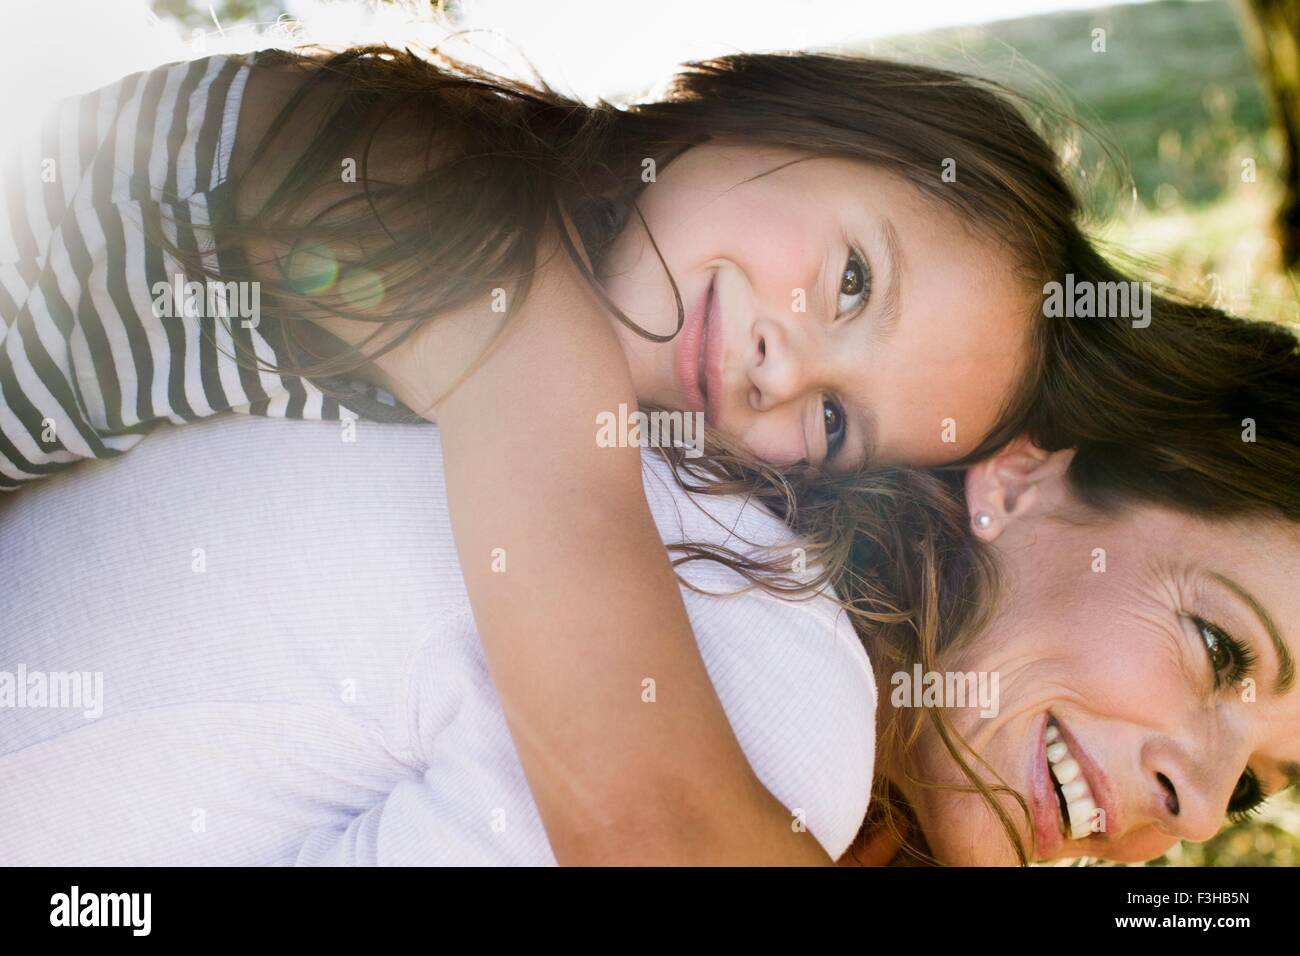 Mature woman giving daughter piggy back in park - Stock Image